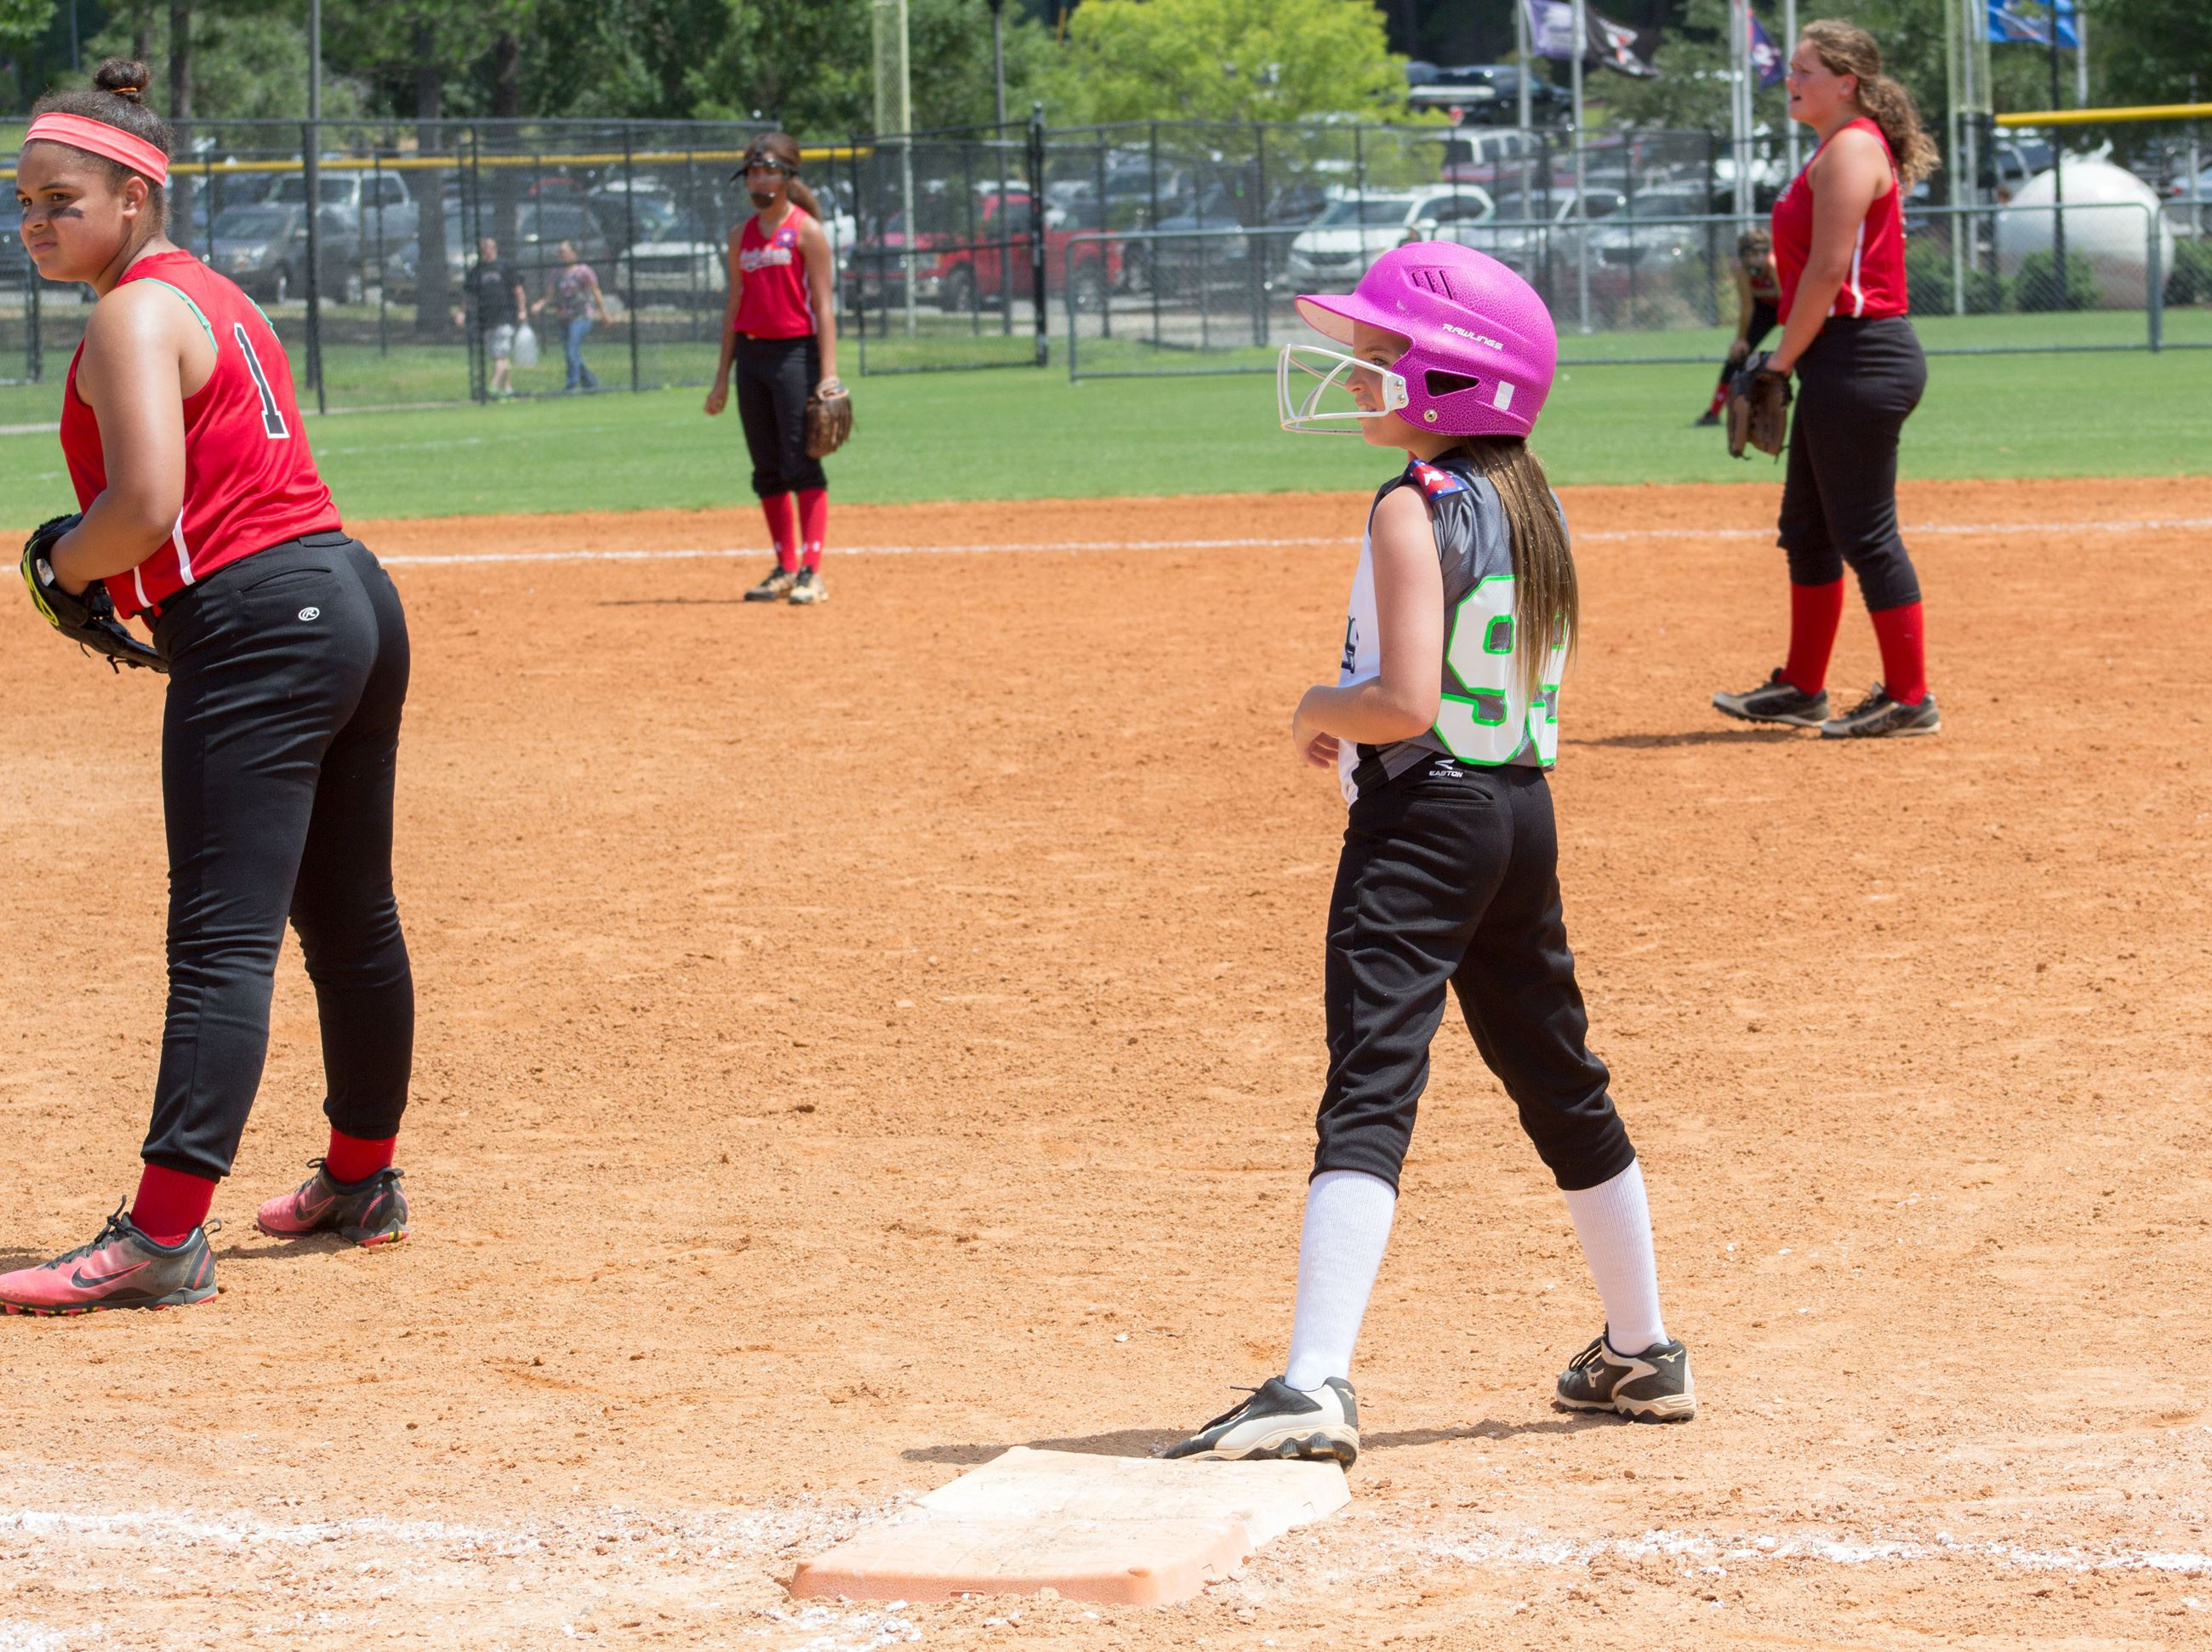 Image of girl on first base playing softball.